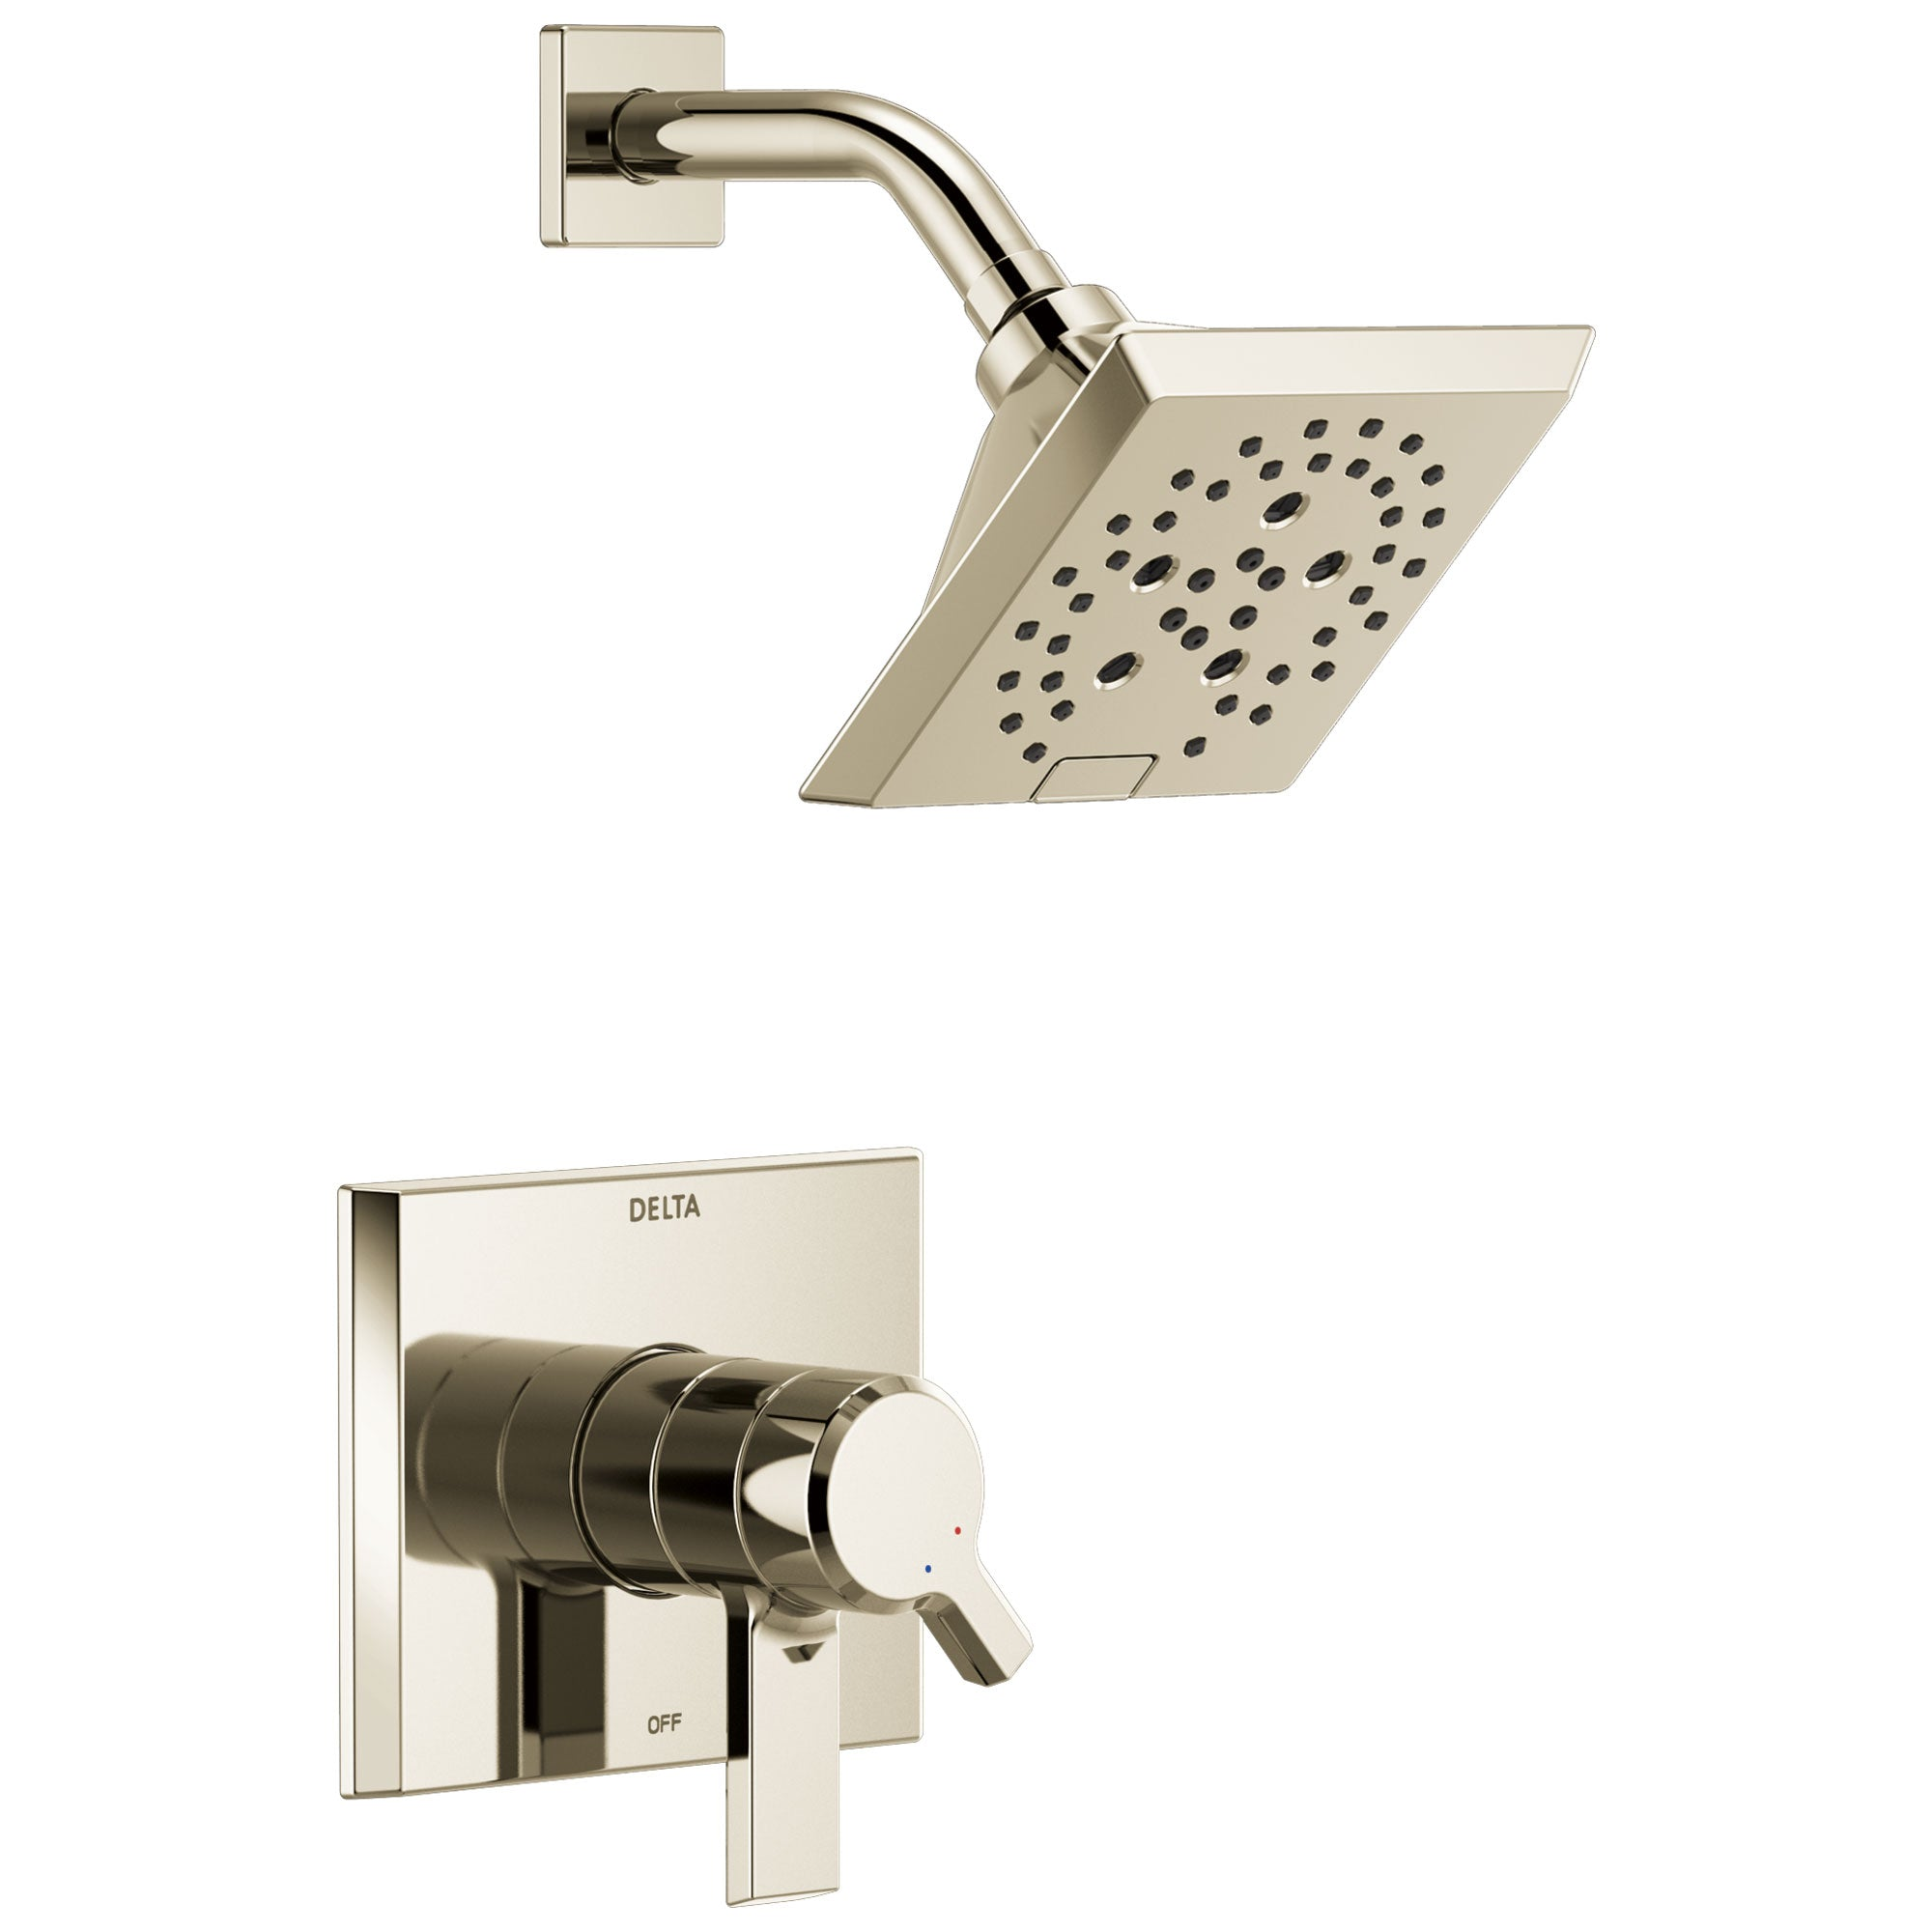 Delta Pivotal Modern Polished Nickel Finish H2Okinetic Shower only Faucet Includes 17 Series Cartridge, Handles, and Valve with Stops D3358V